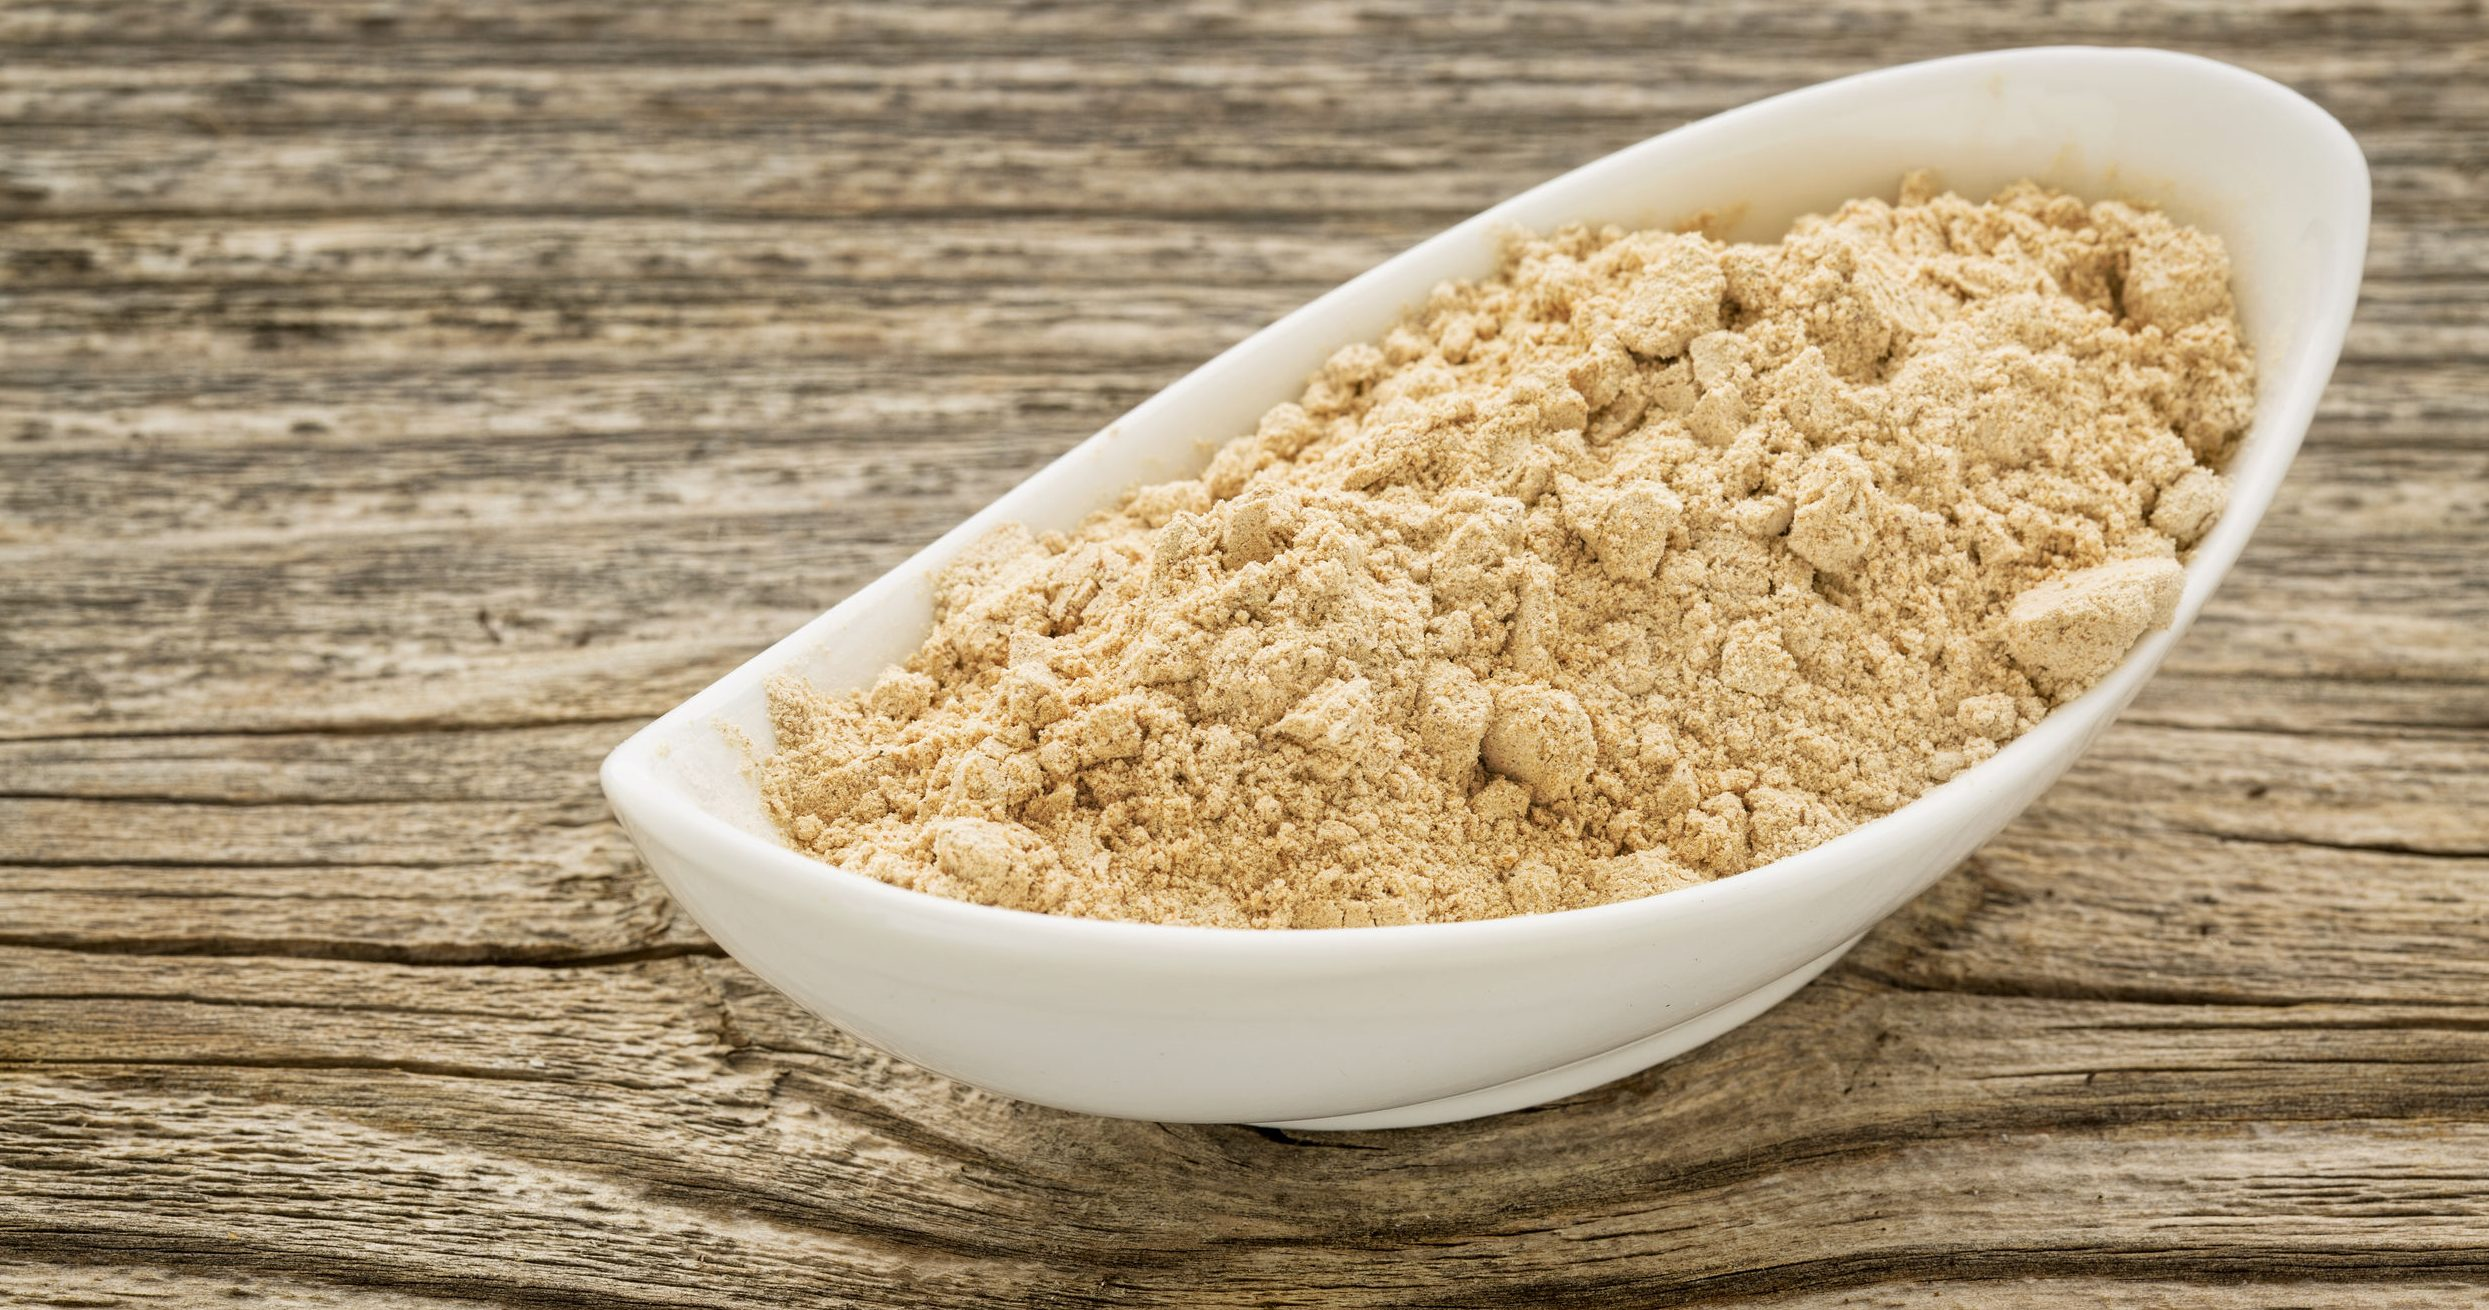 Best Maca Supplement 2021: Shopping Guide & Review